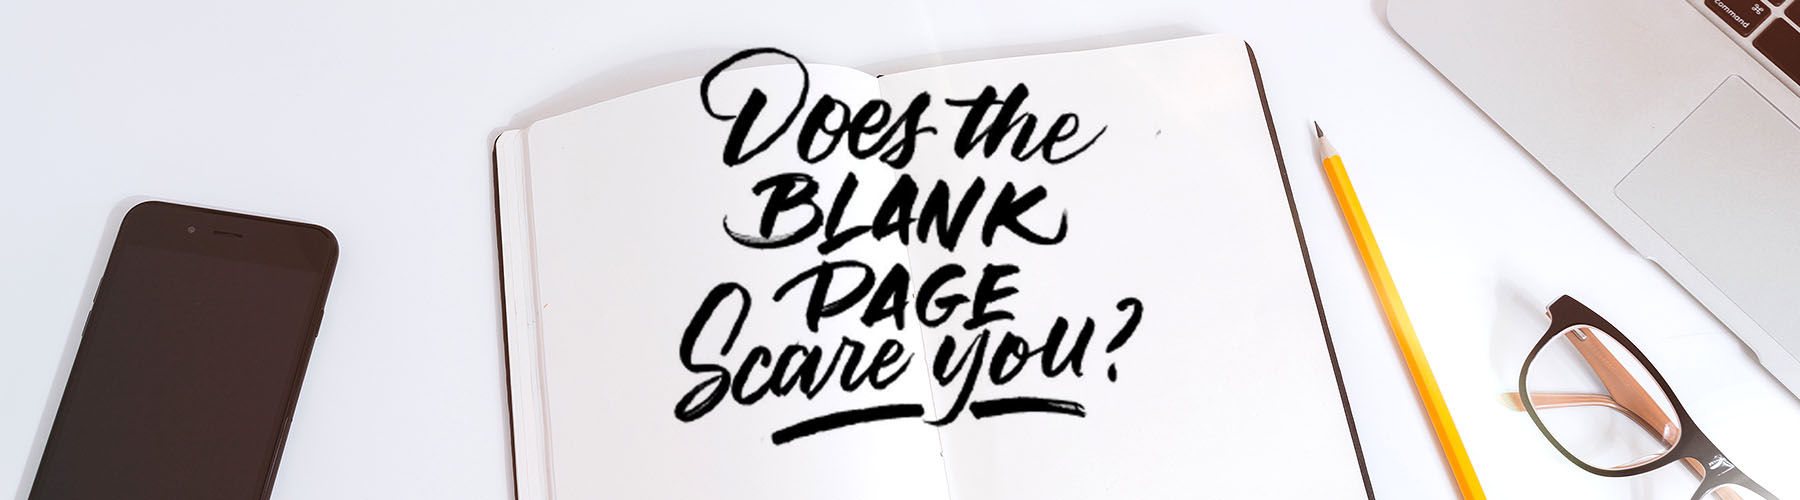 Does-the-Blank-Page-Scare-YouArtboard-1.jpg